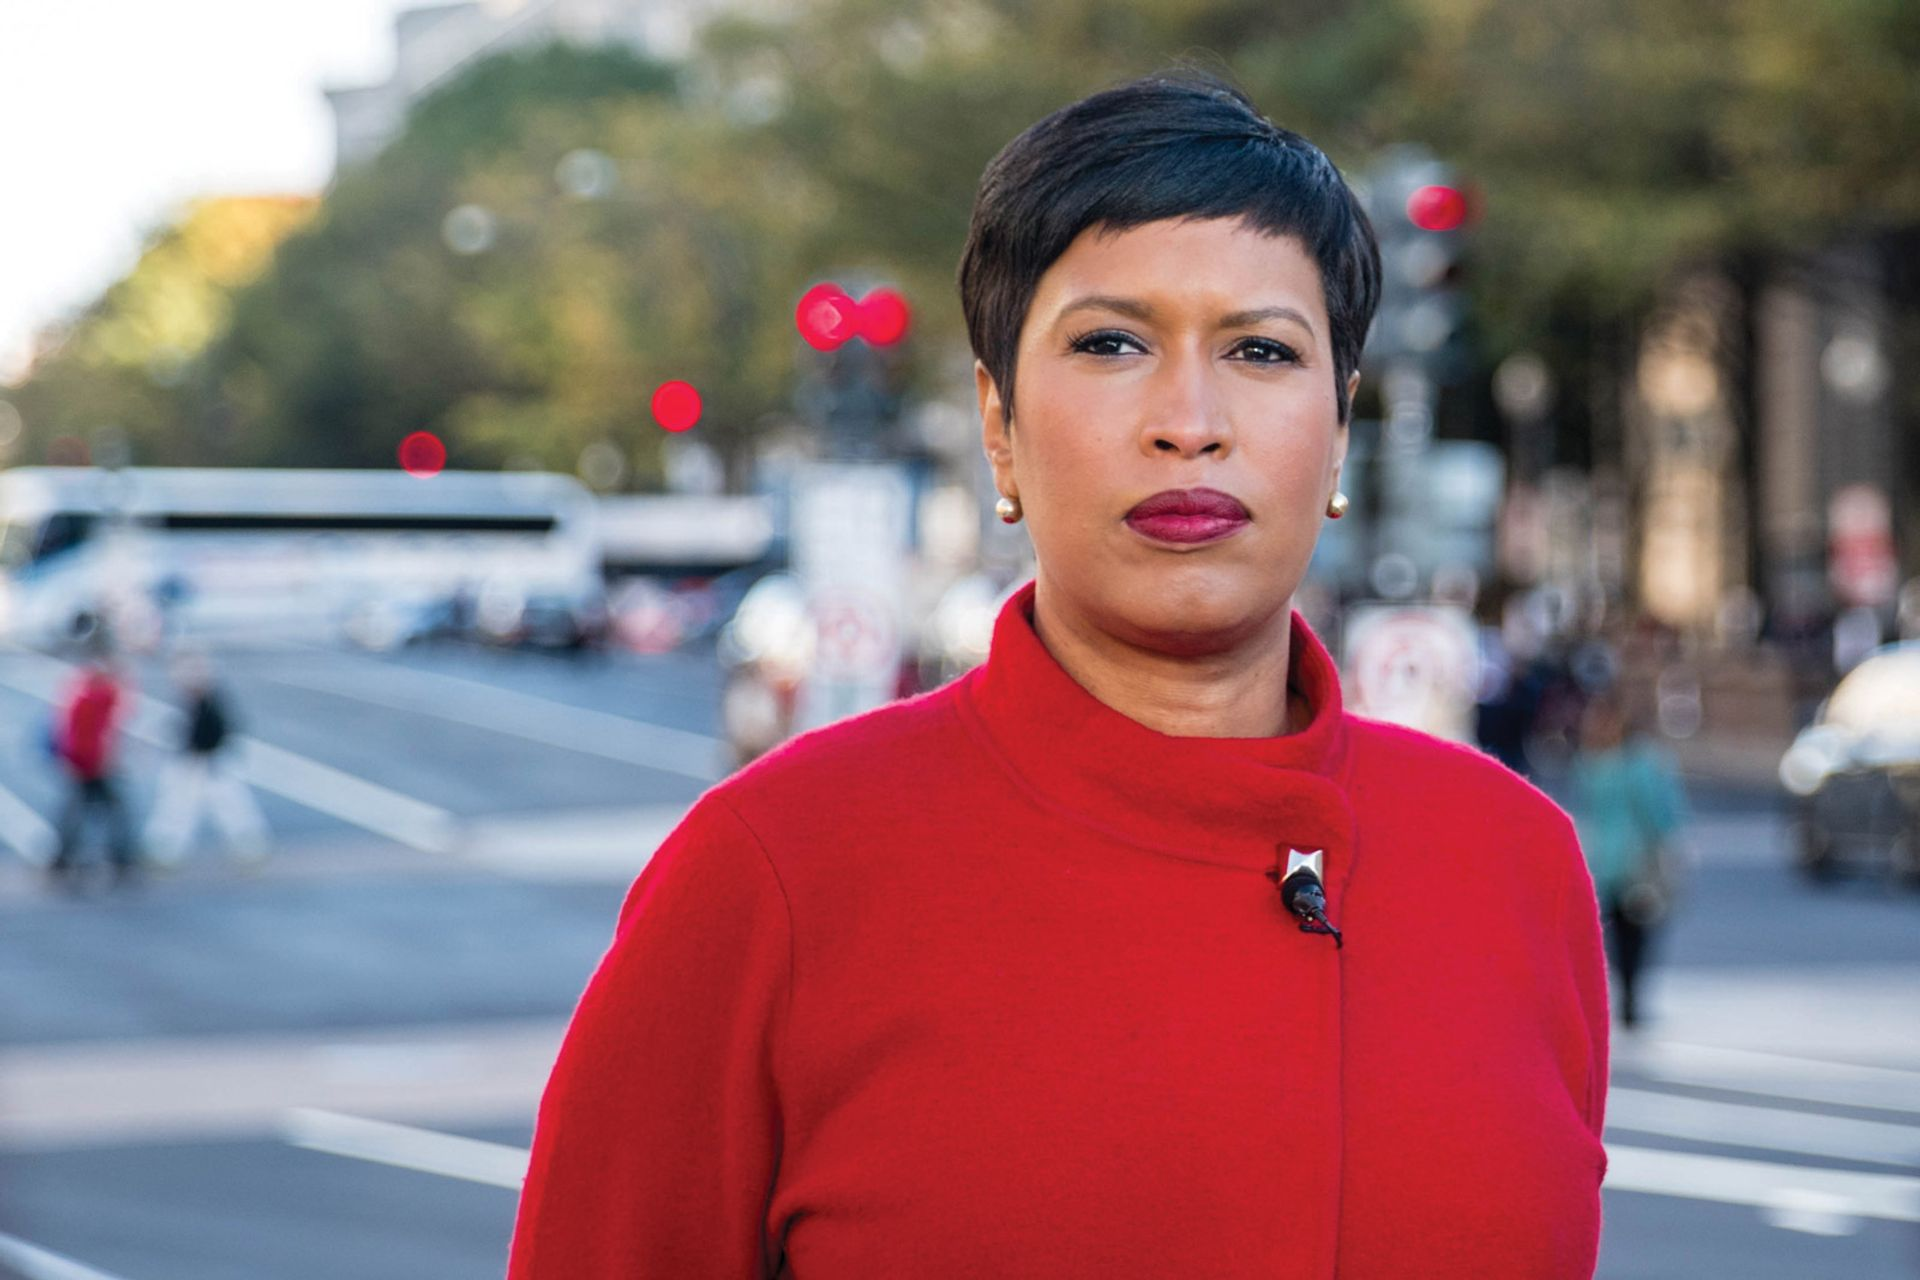 Muriel Bowser has sparked controversy with her takeover of the Mayor's Arts Awards and attempts to change city arts funding, despite opposition from council chairman Phil Mendelson Photo: Lorie Shaull